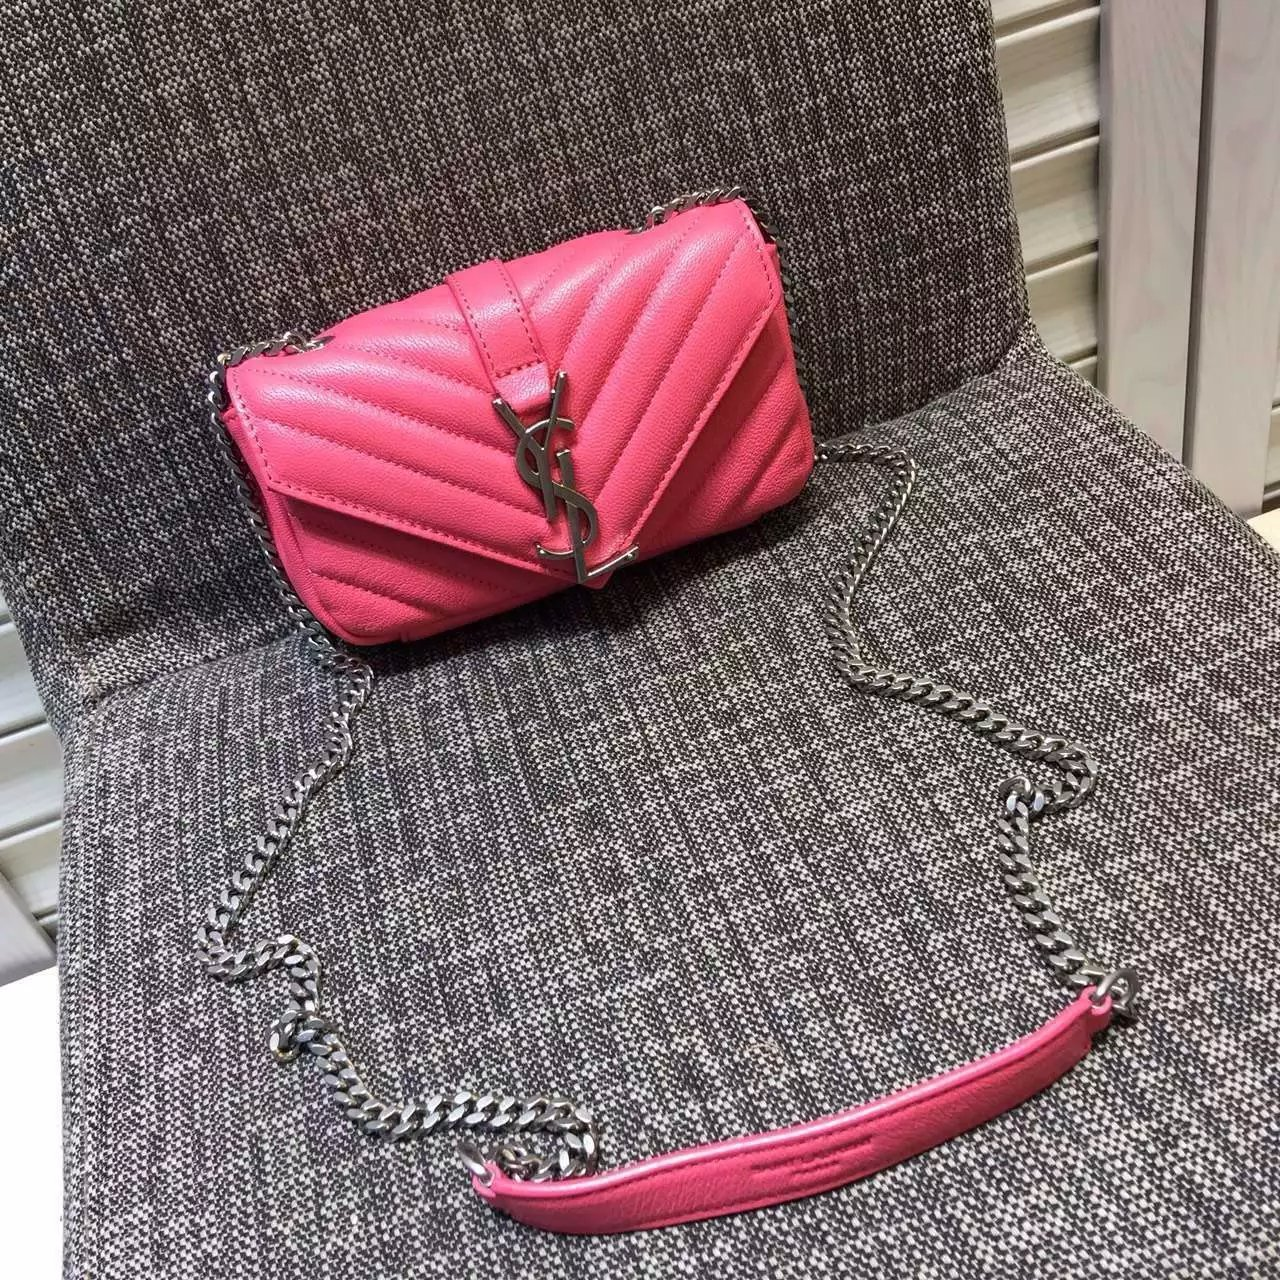 2016 Cheap YSL Outsale with Free Shipping-Saint Laurent Classic Baby Monogram Satchel in Pink Matelasse Leather with Silver Hardware